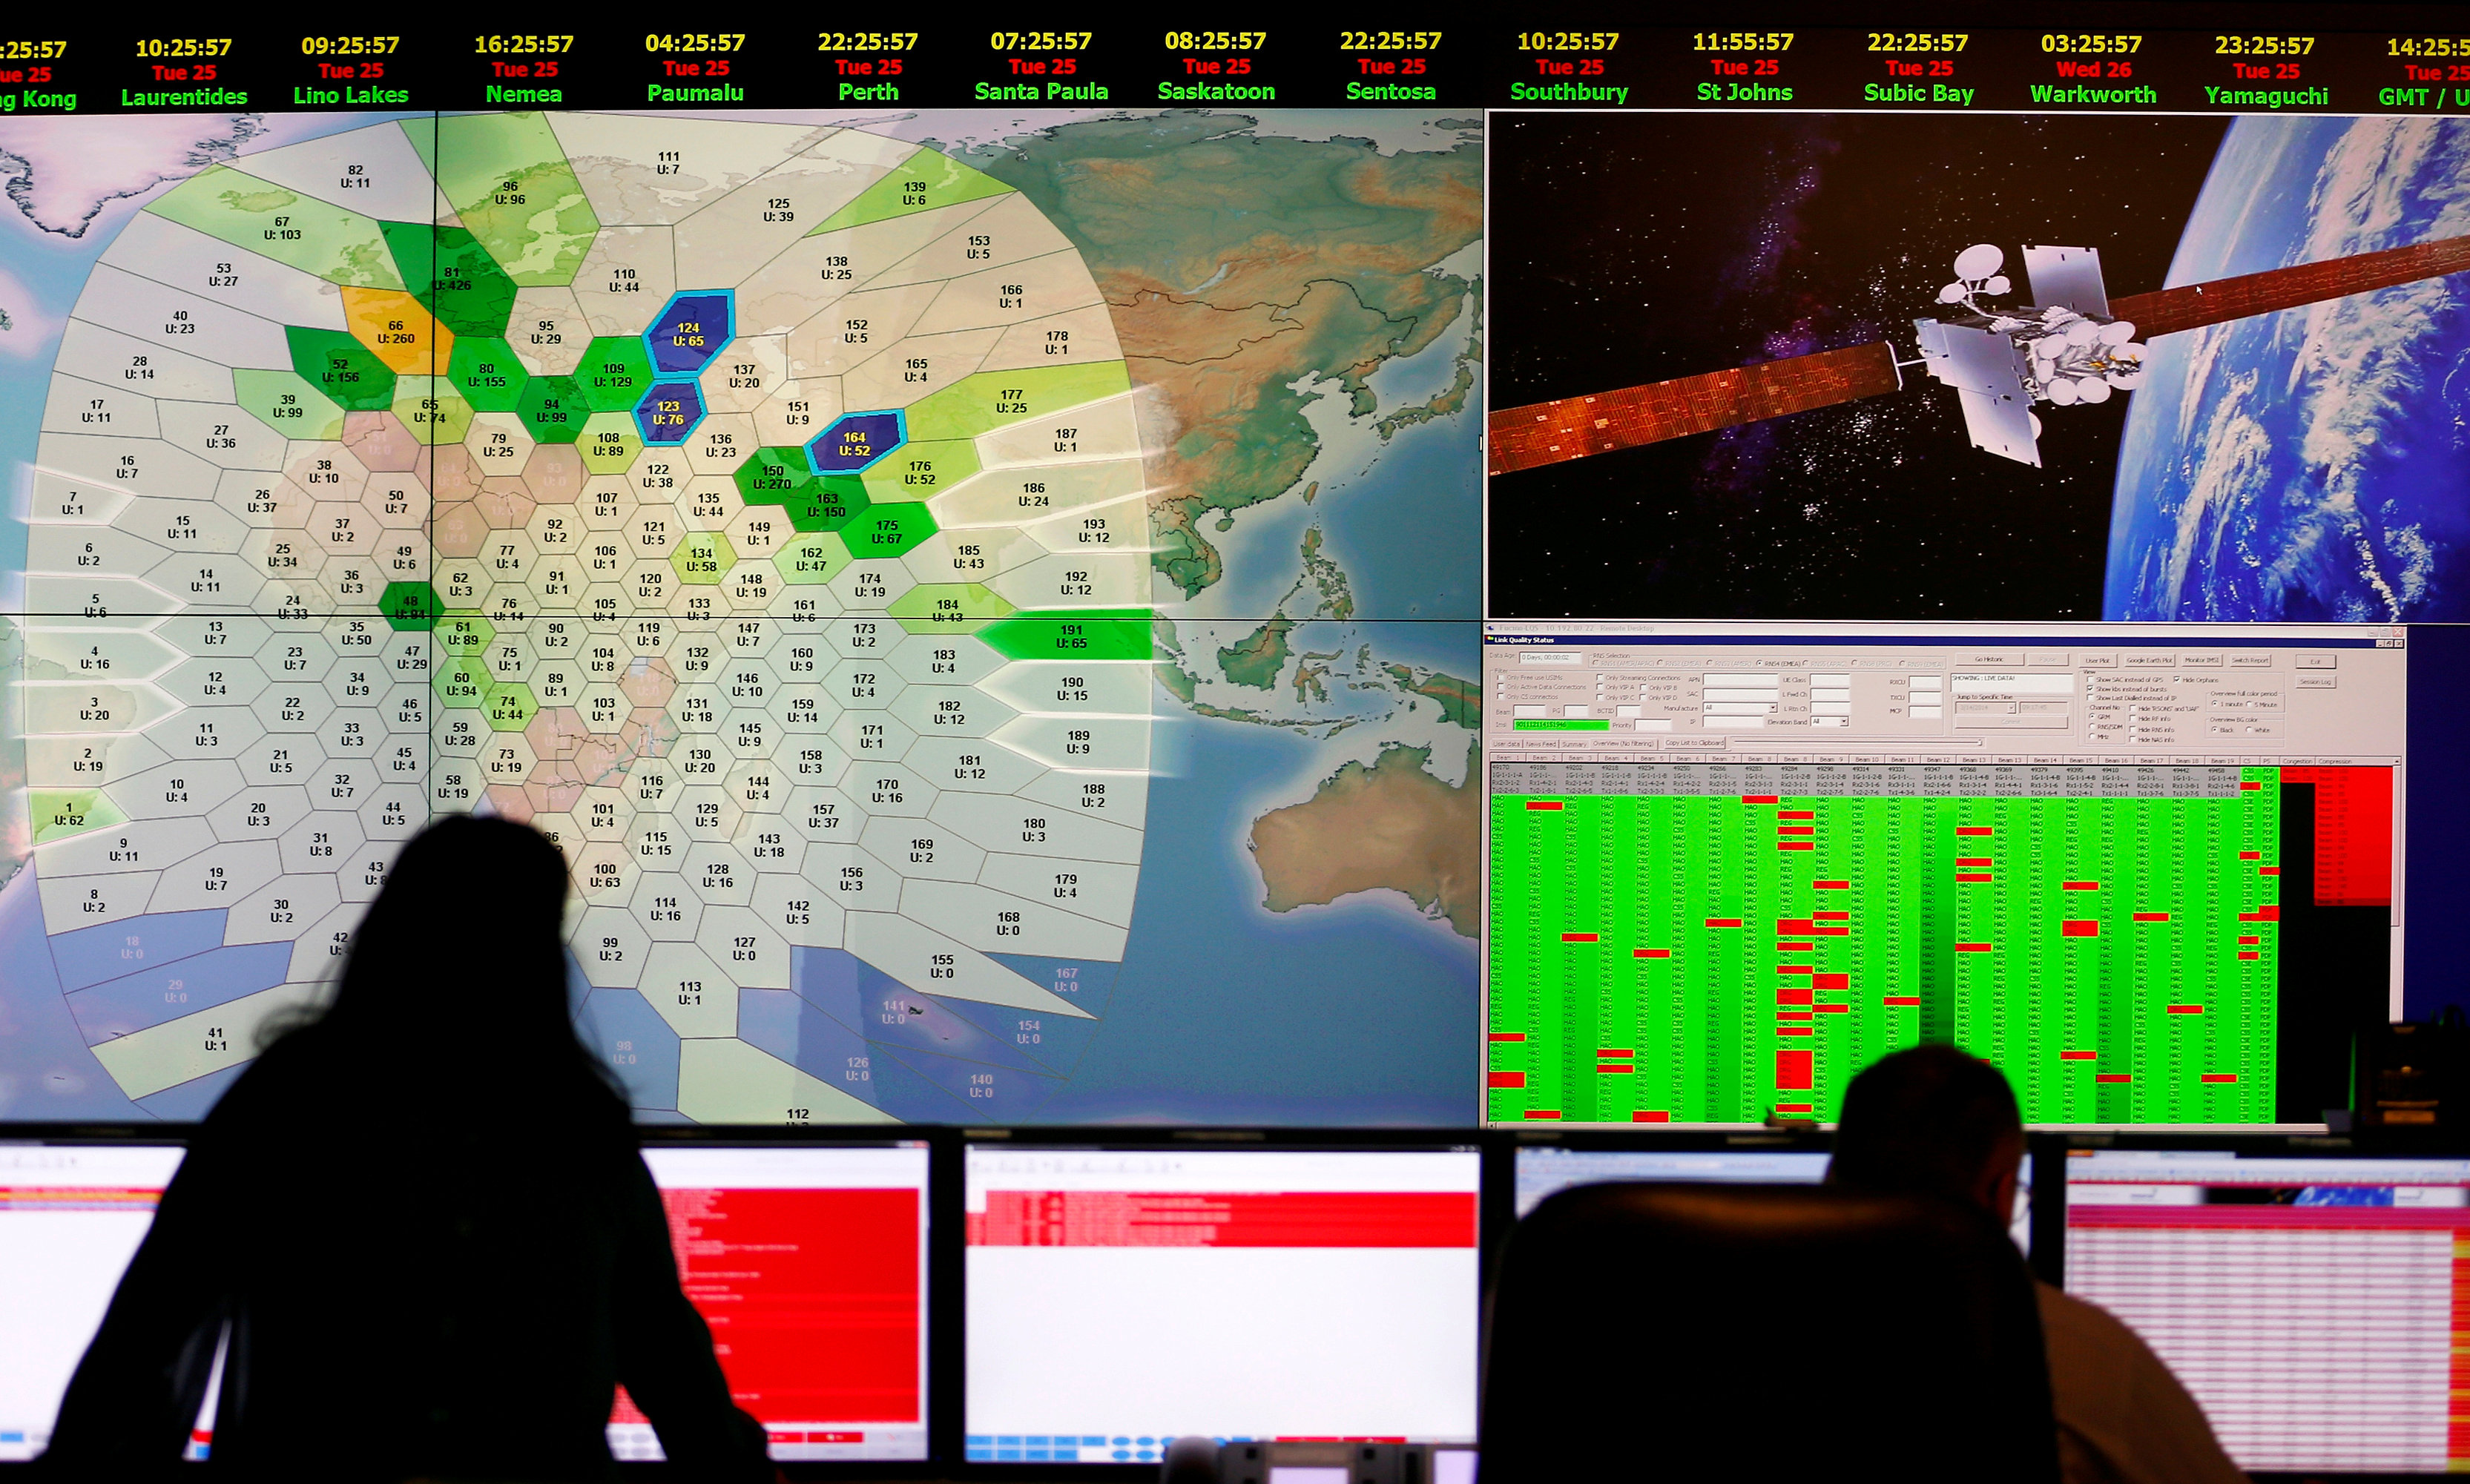 Rocket science: will Inmarsat's wi-fi in the sky pay off?